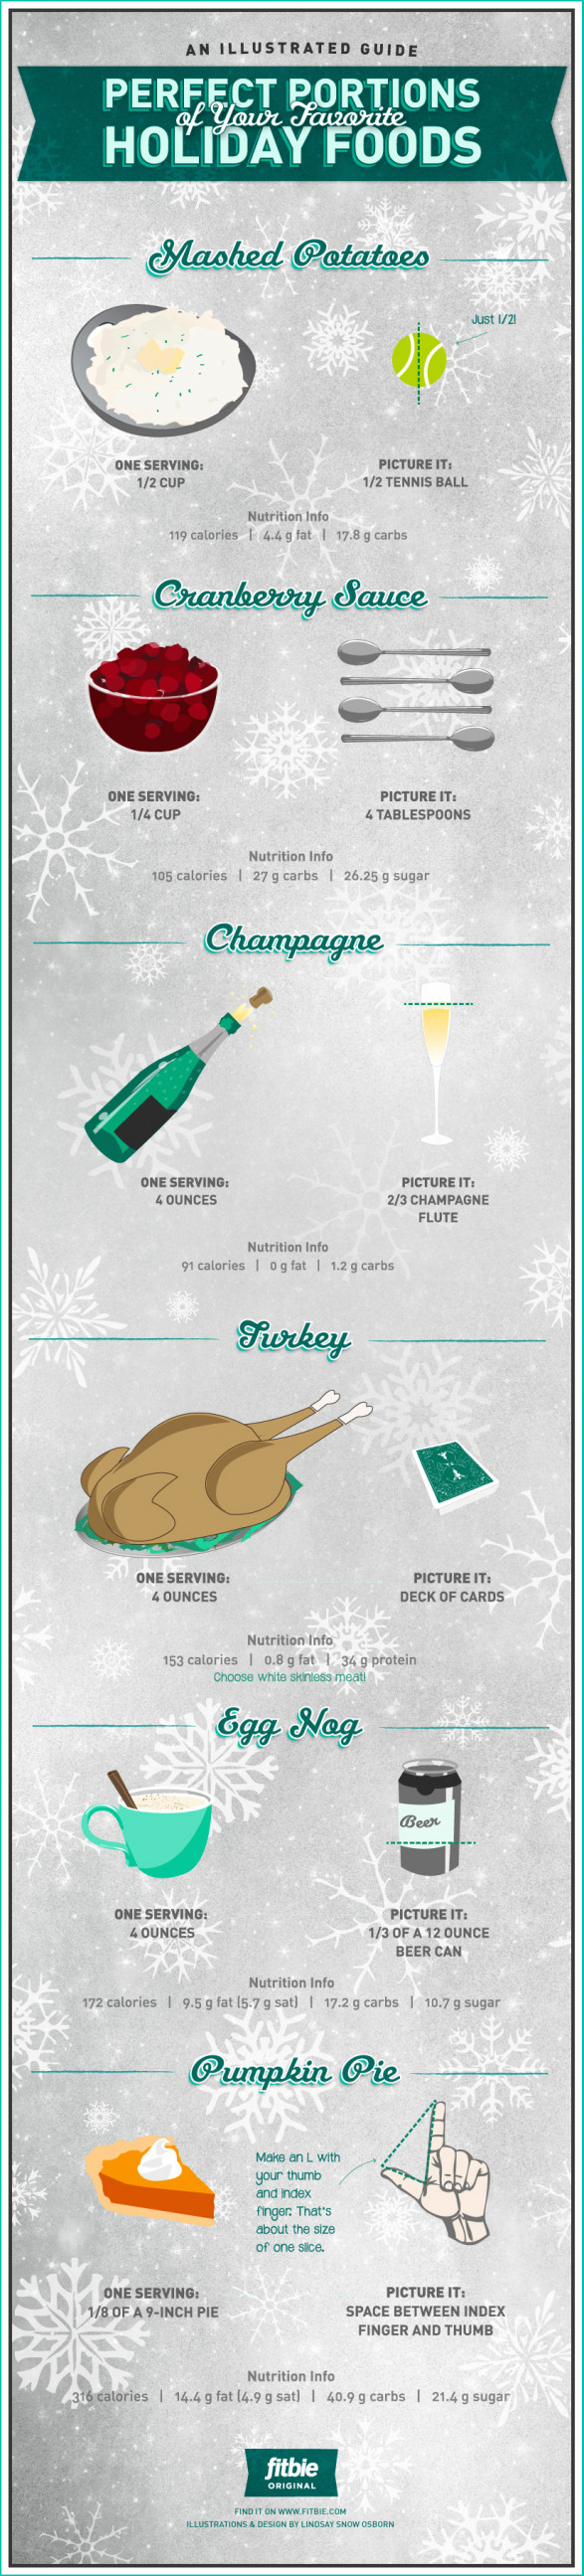 Portions of Favorite Holiday Foods